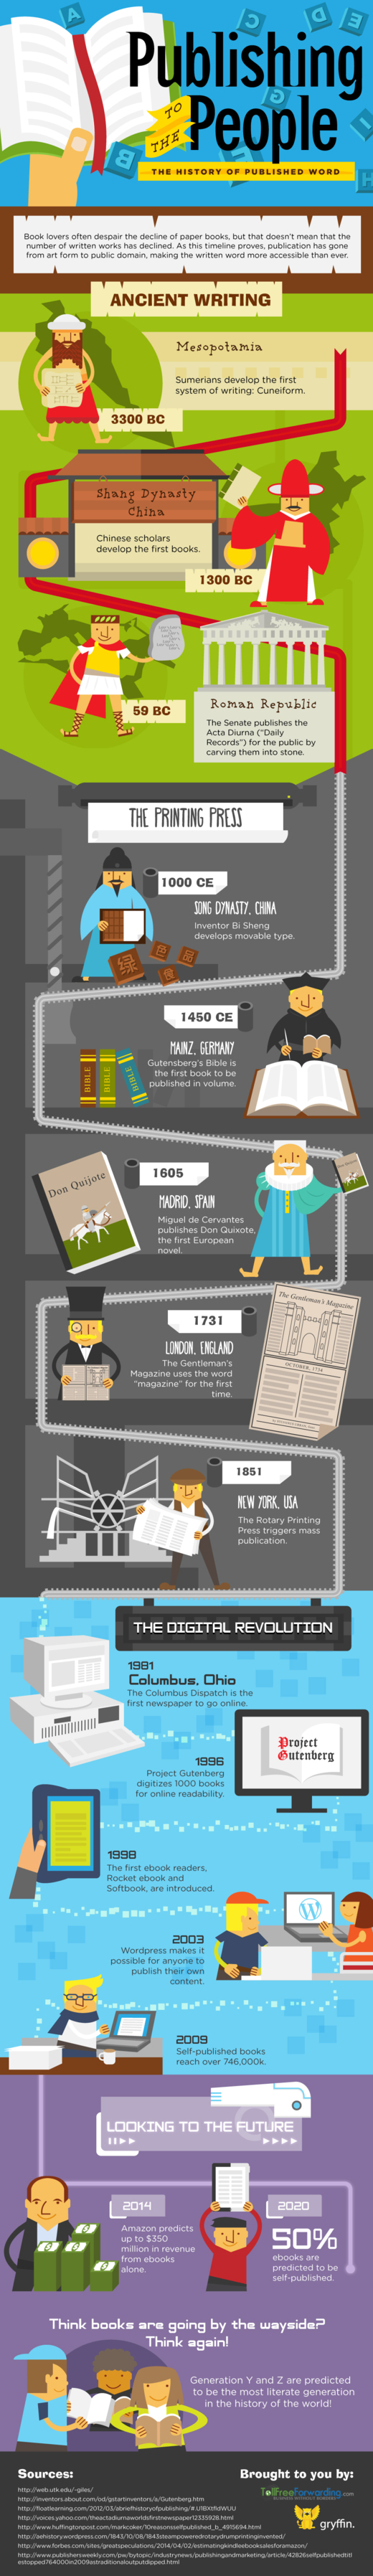 Publishing to the People: The History of the Published Word